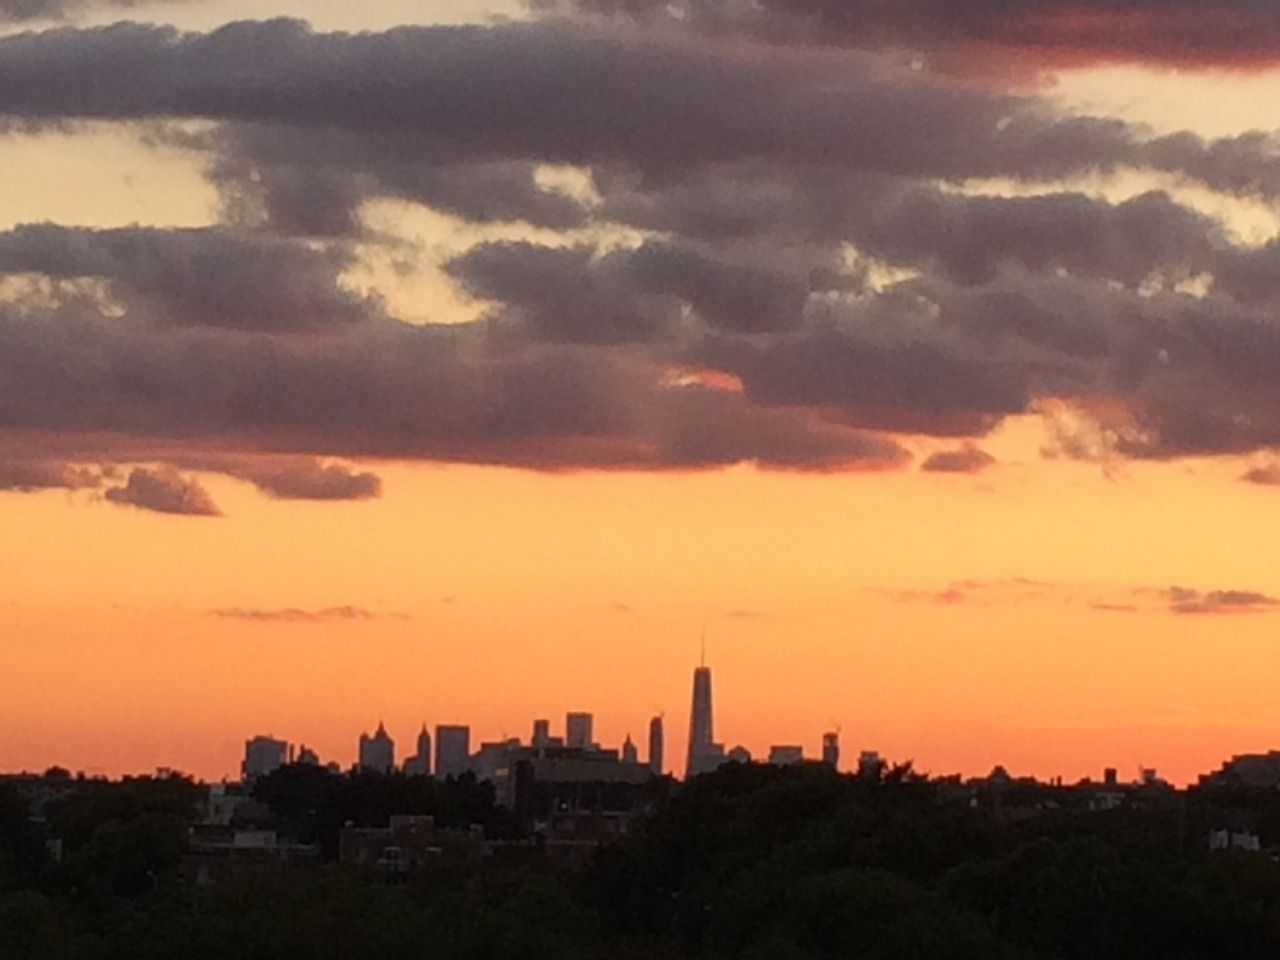 Our beautiful, but changed skyline, on Sept. 11, from Arthur Ashe at the U.S. Open.